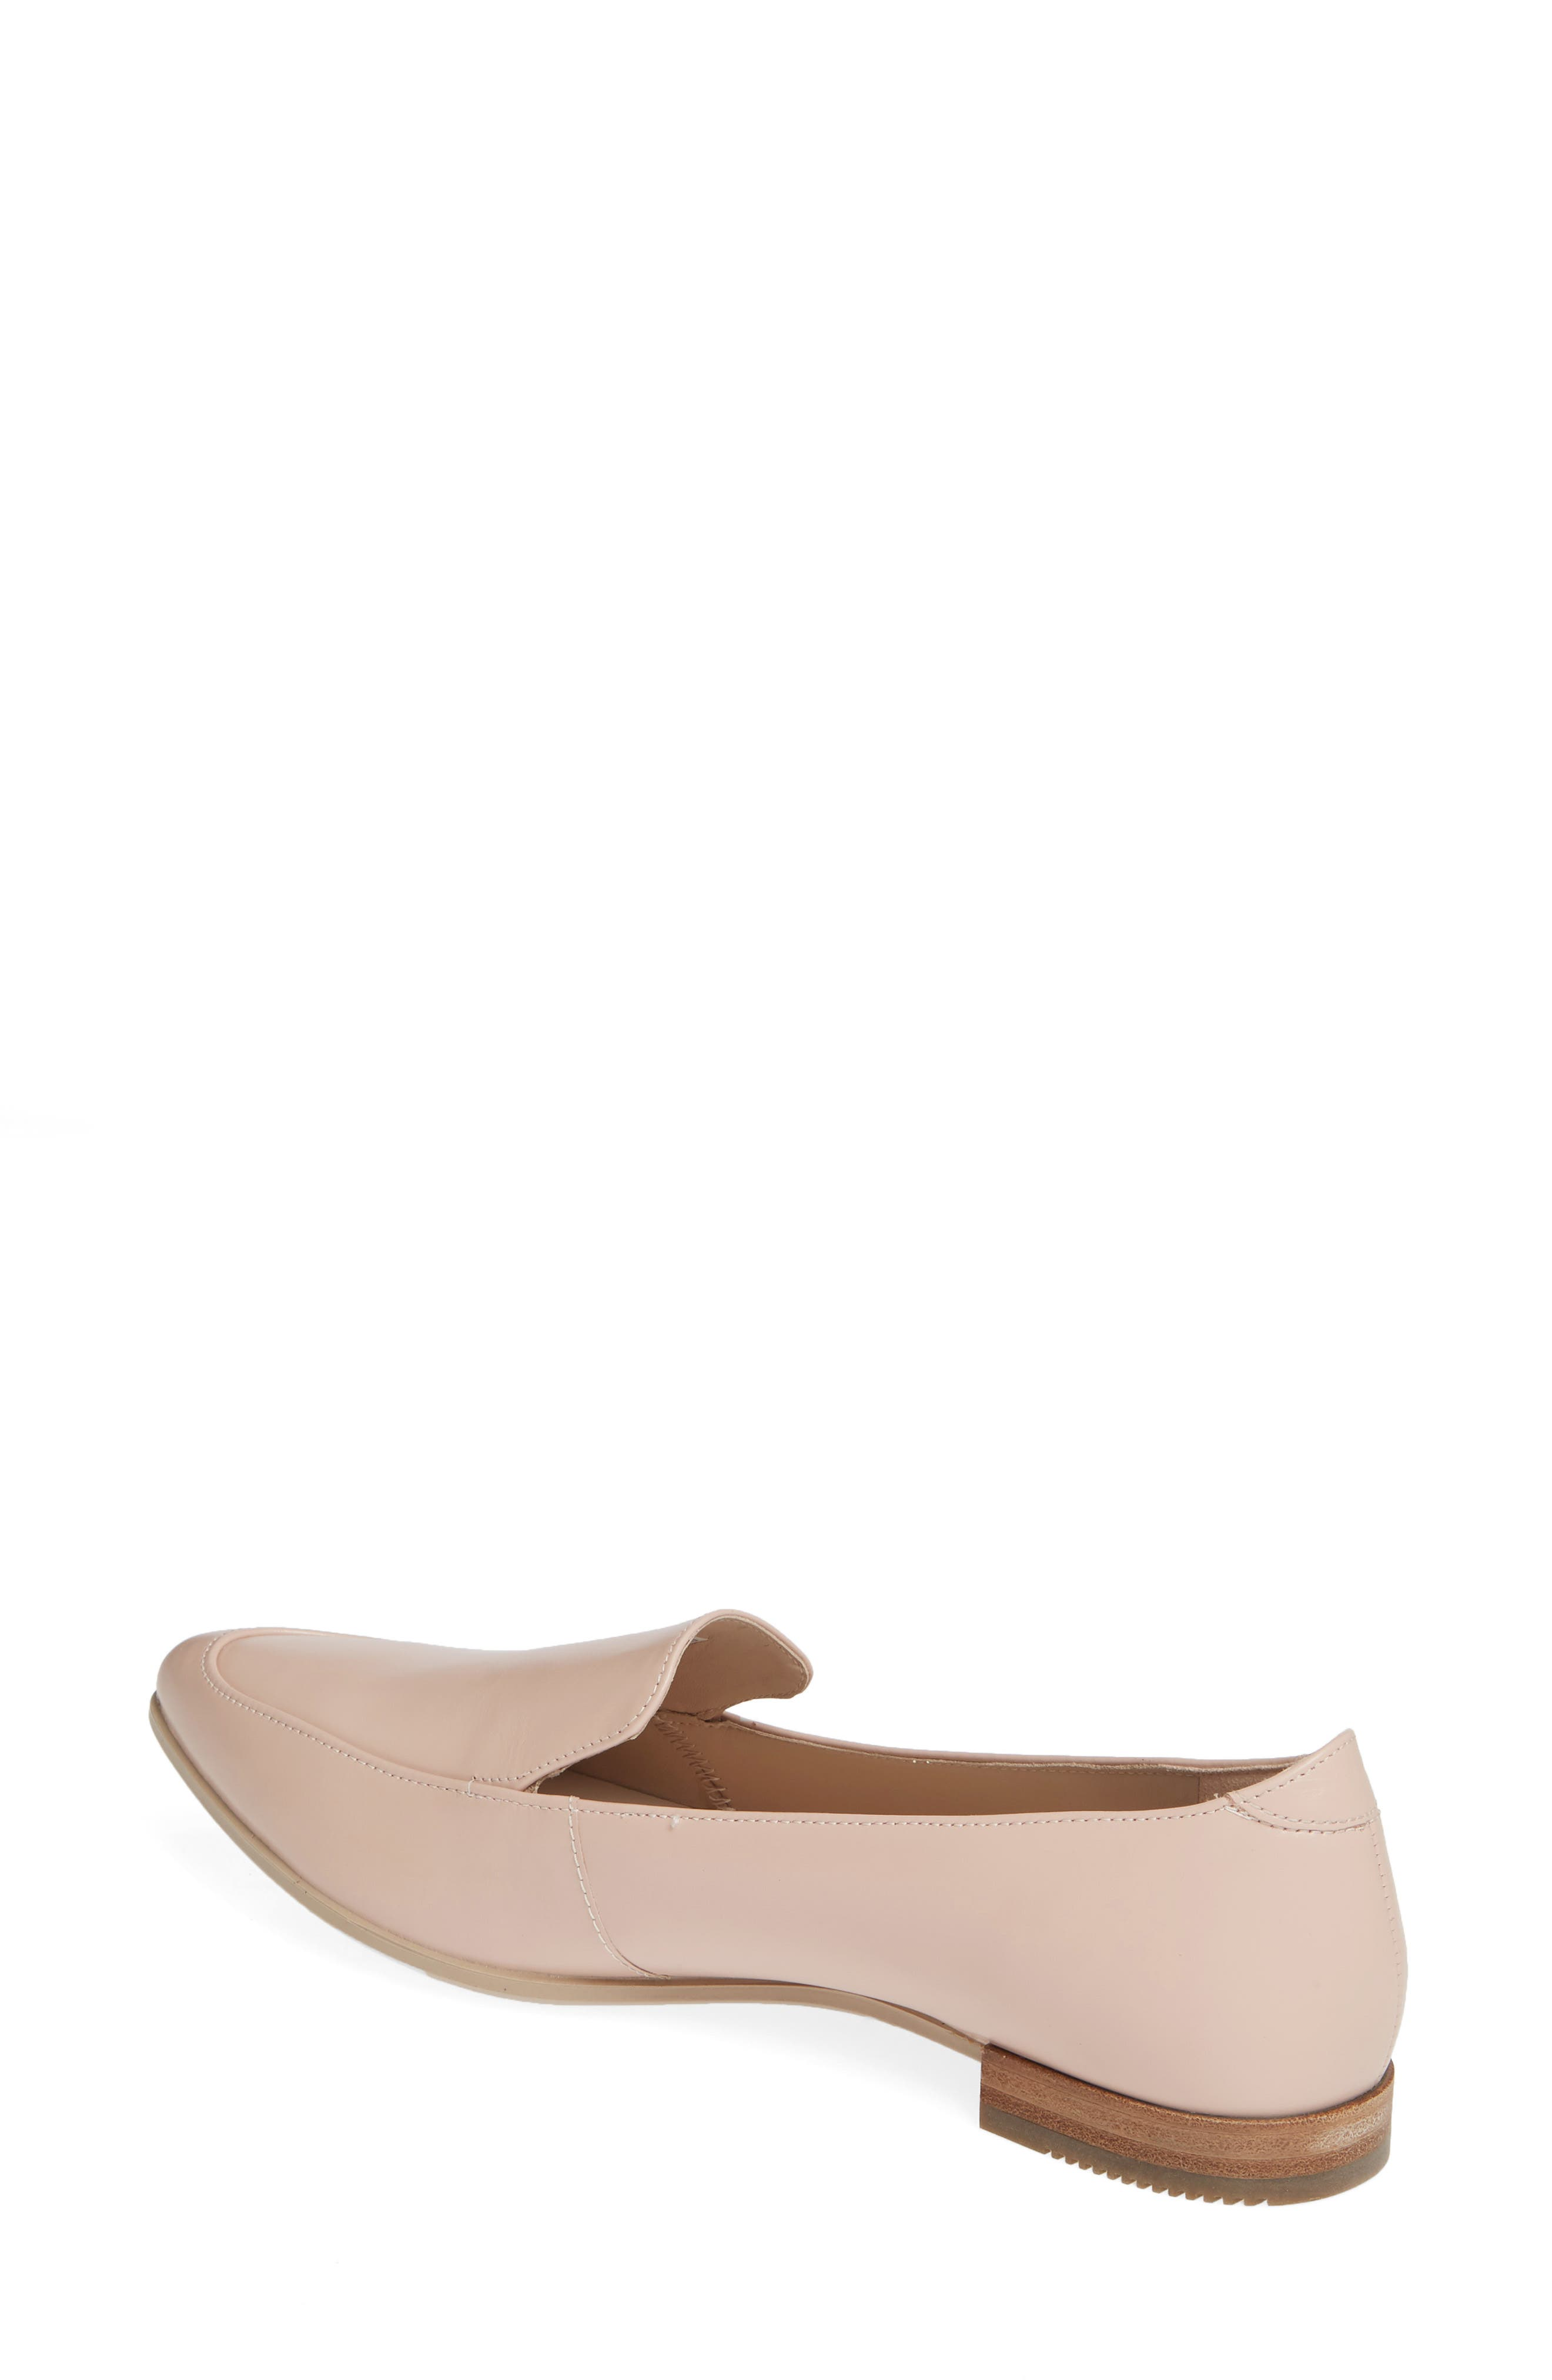 ECCO, Shape Pointy Ballerina II Flat, Alternate thumbnail 2, color, ROSE DUST LEATHER